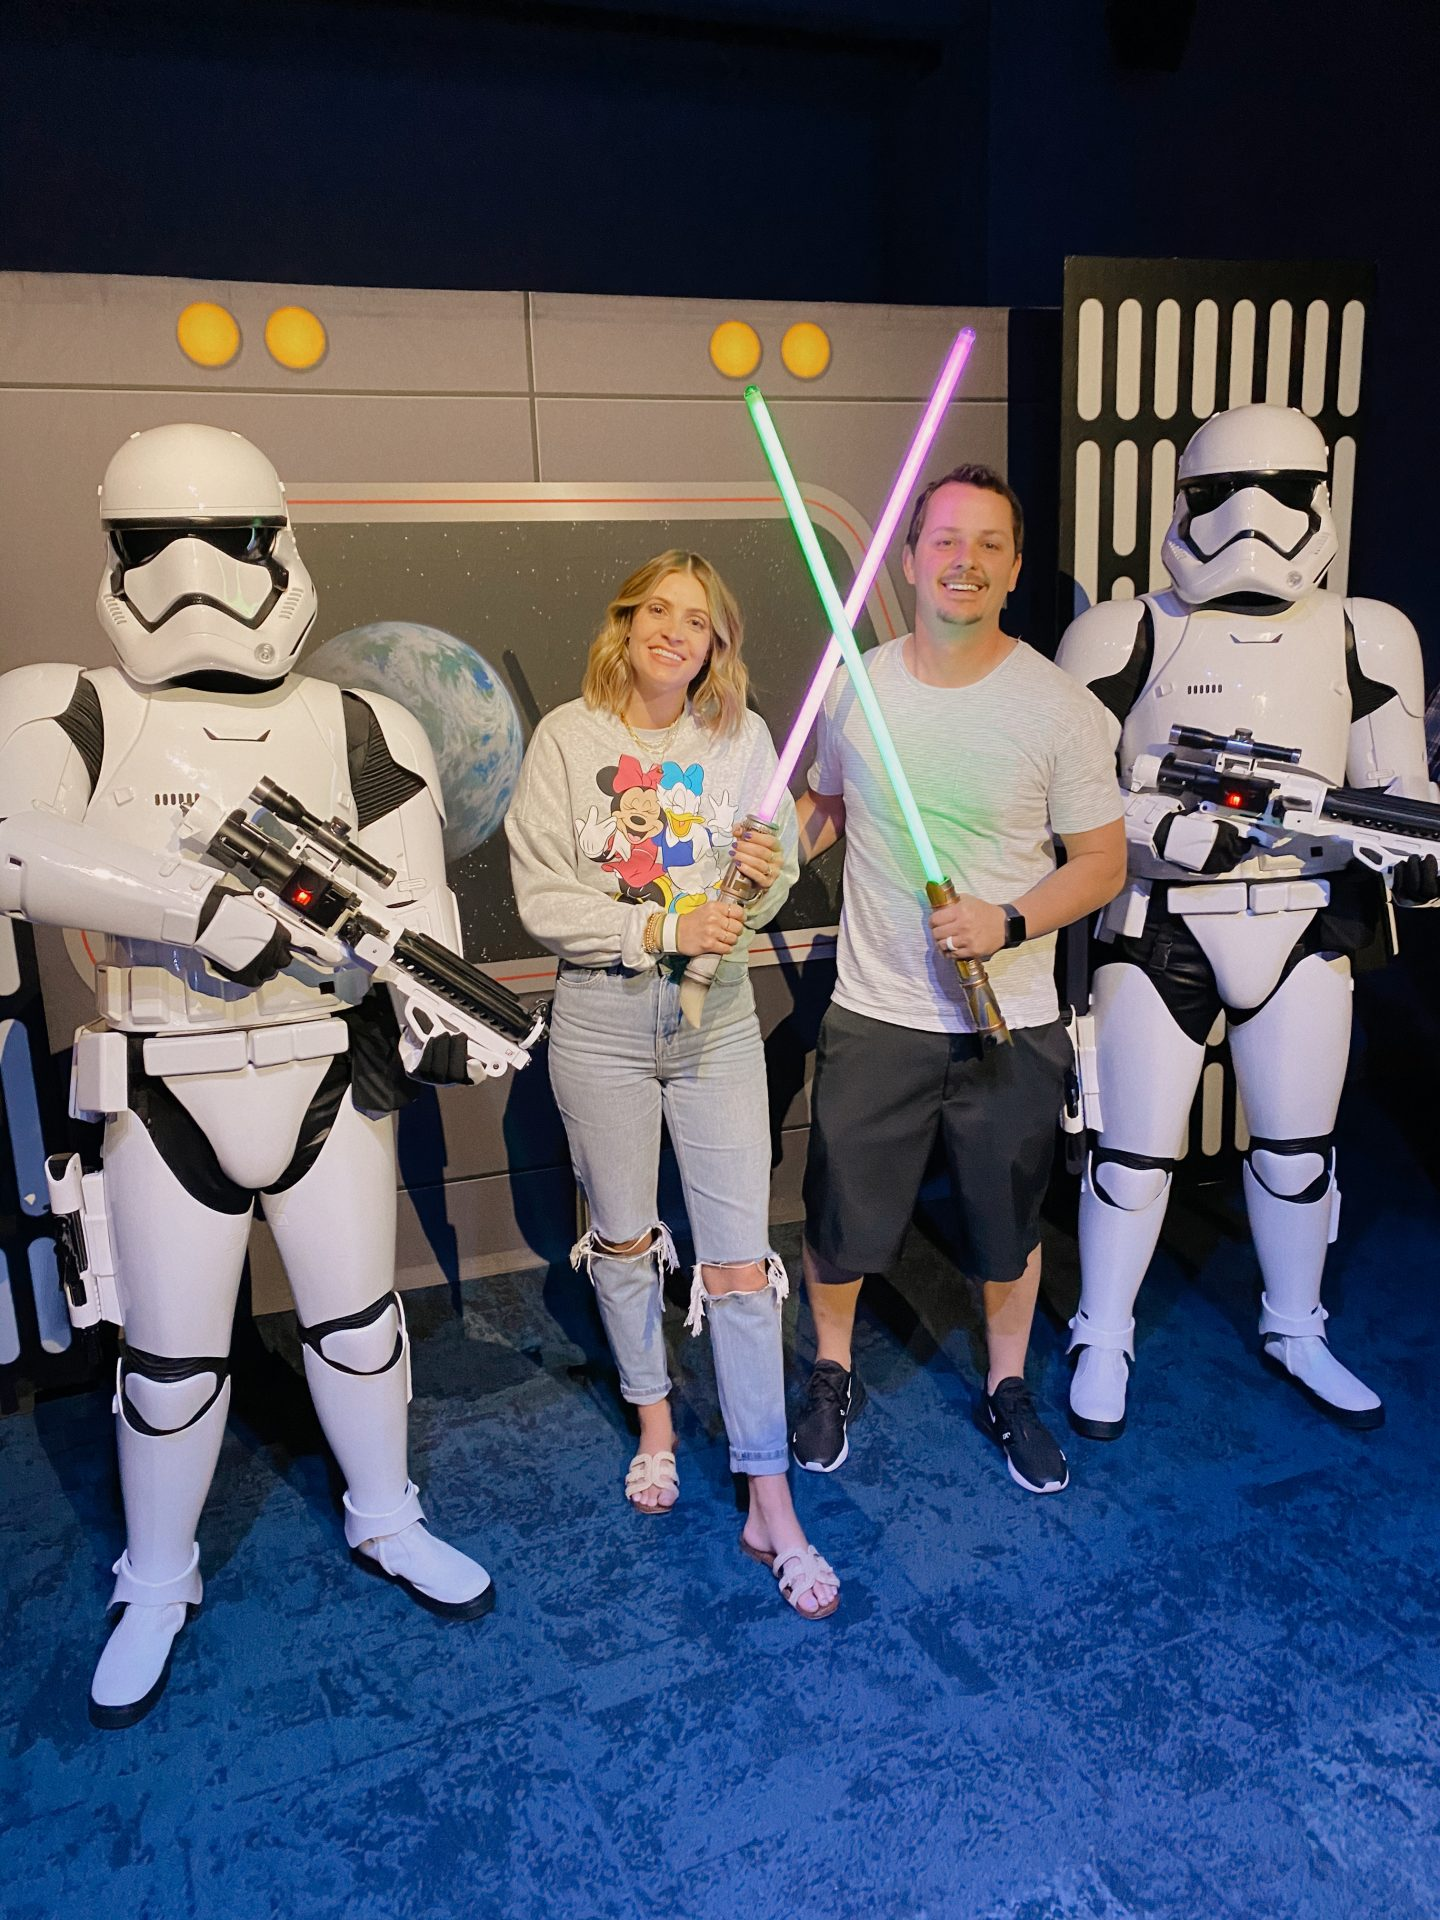 TOP 10 BEST DISNEYLAND TIPS FOR YOUR FAMILY featured by top San Diego blog, Navy Grace | Disneyland Tips by popular San Diego lifestyle blog, Navy Grace: image of a husband and wife holding light sabers and standing in between two storm troopers.